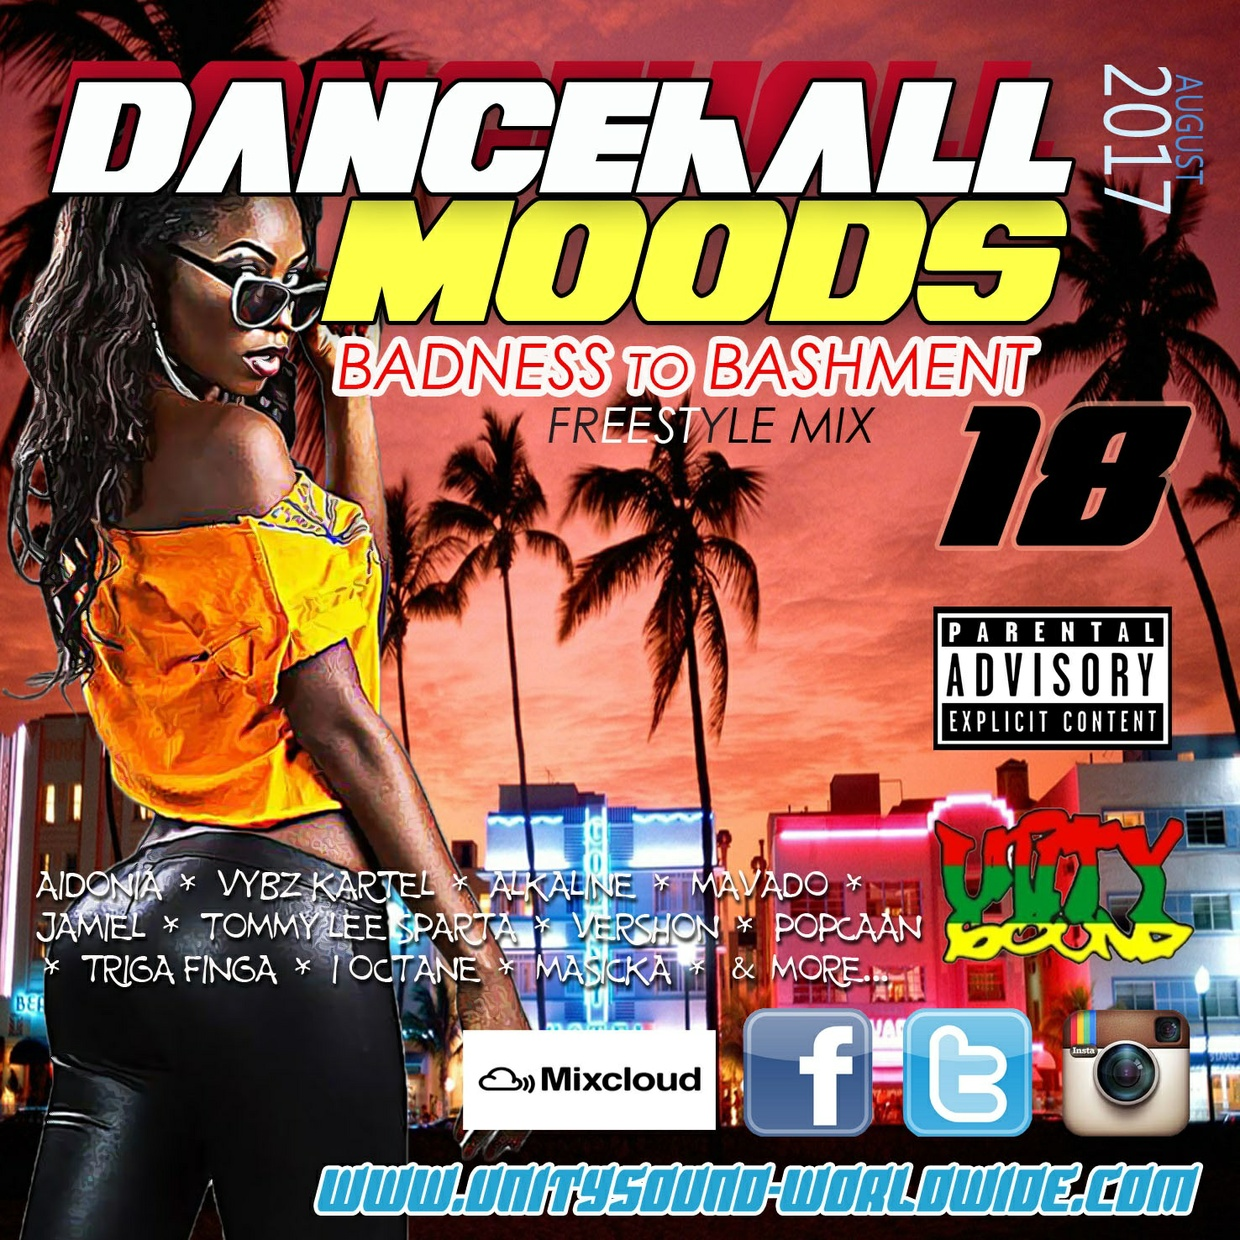 [Multi-Tracked Download] Unity Sound - Dancehall Moods 18 - Badness to Bashment Freestyle Mix 2017